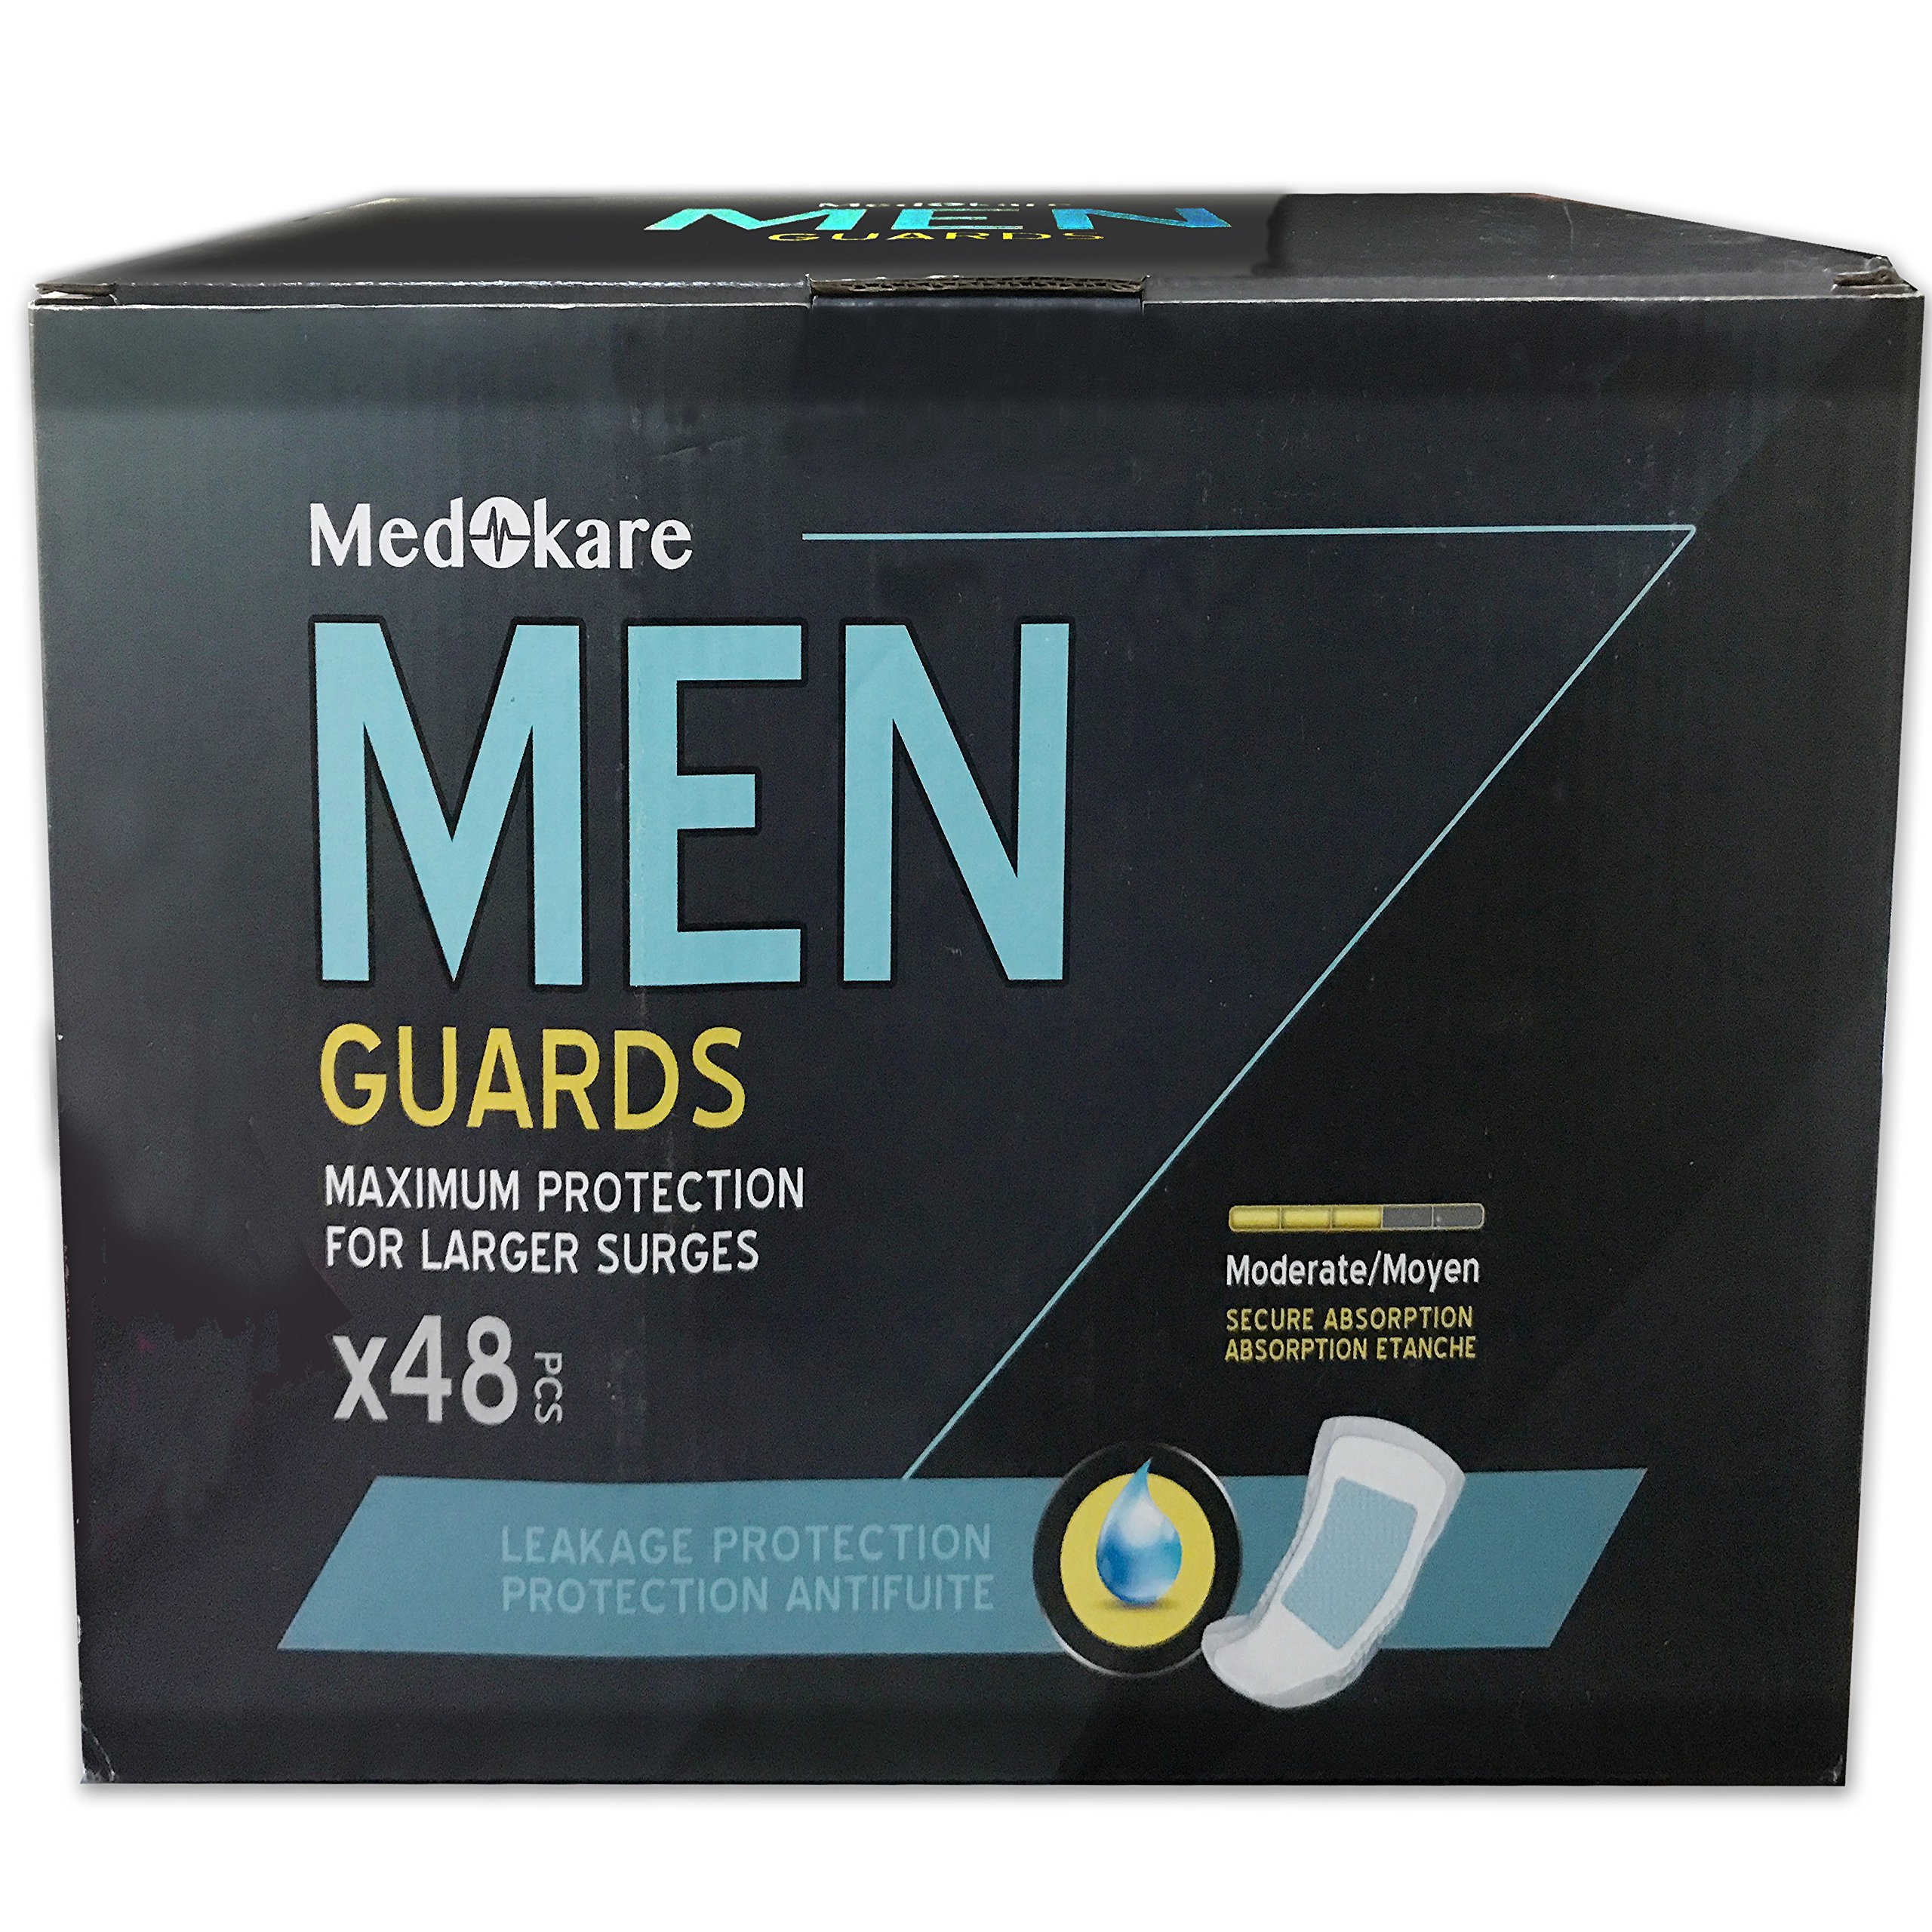 Medokare Incontinence Pads for Men - 450ml/16oz Maximum Absorbency Disposable Men Pads for Leakage, Discreet Cup Bladder Control Pads Shields for Men, Urine Leakage Protection Men Guards